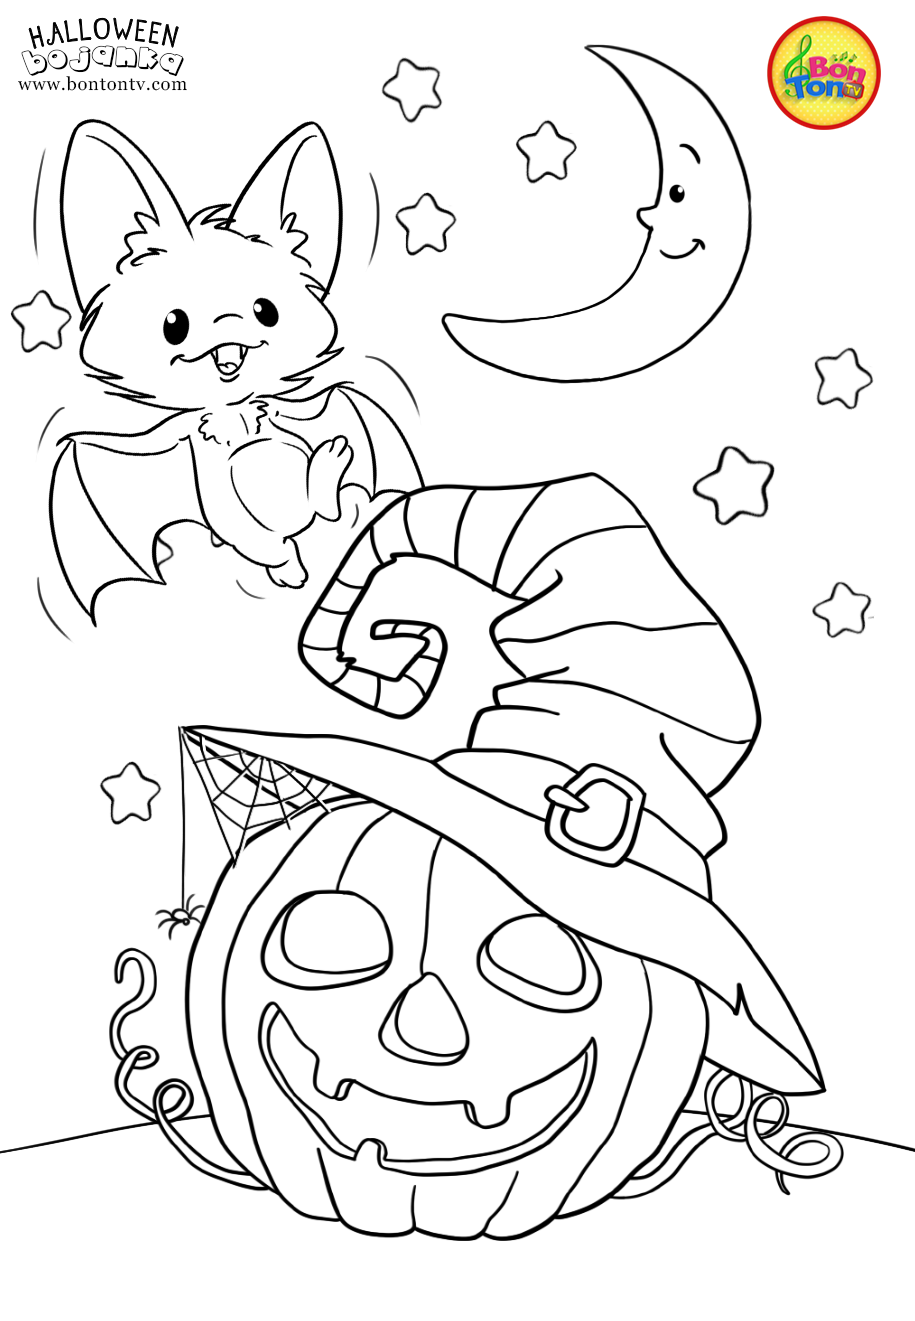 Most Current Free Of Charge Kids Coloring Books Popular This Can Be A Supreme Secrets In 2021 Scary Halloween Crafts Halloween Coloring Sheets Halloween Coloring Book